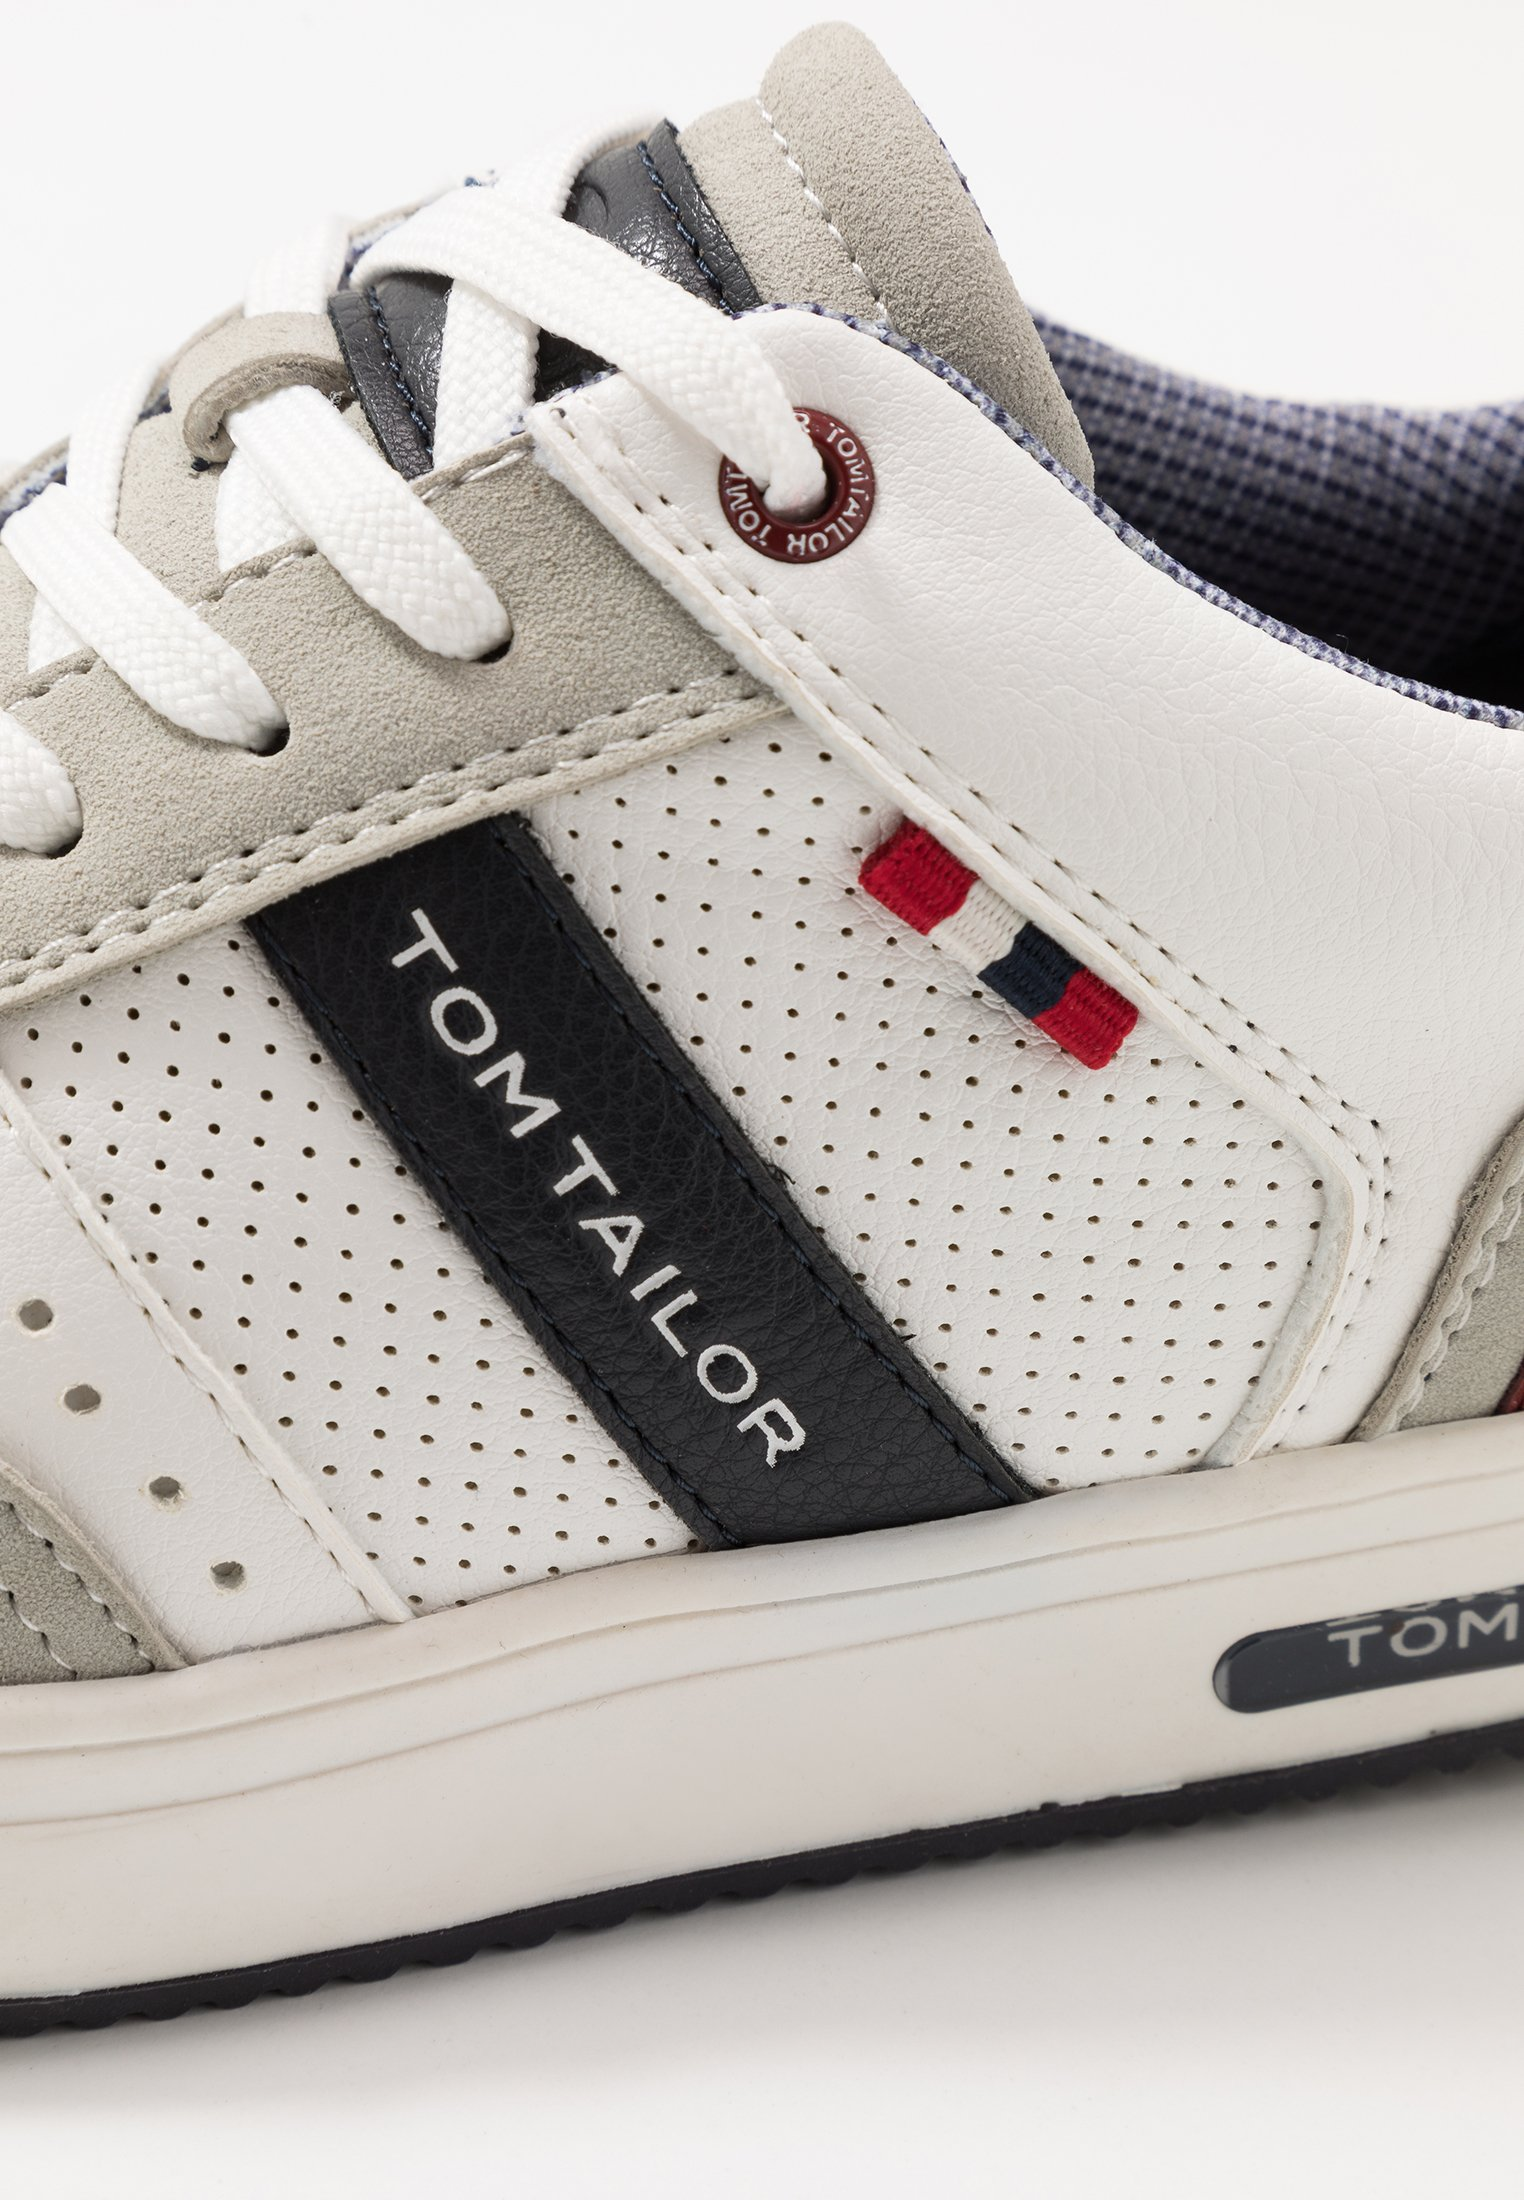 Tom Tailor Sneakers - Ice